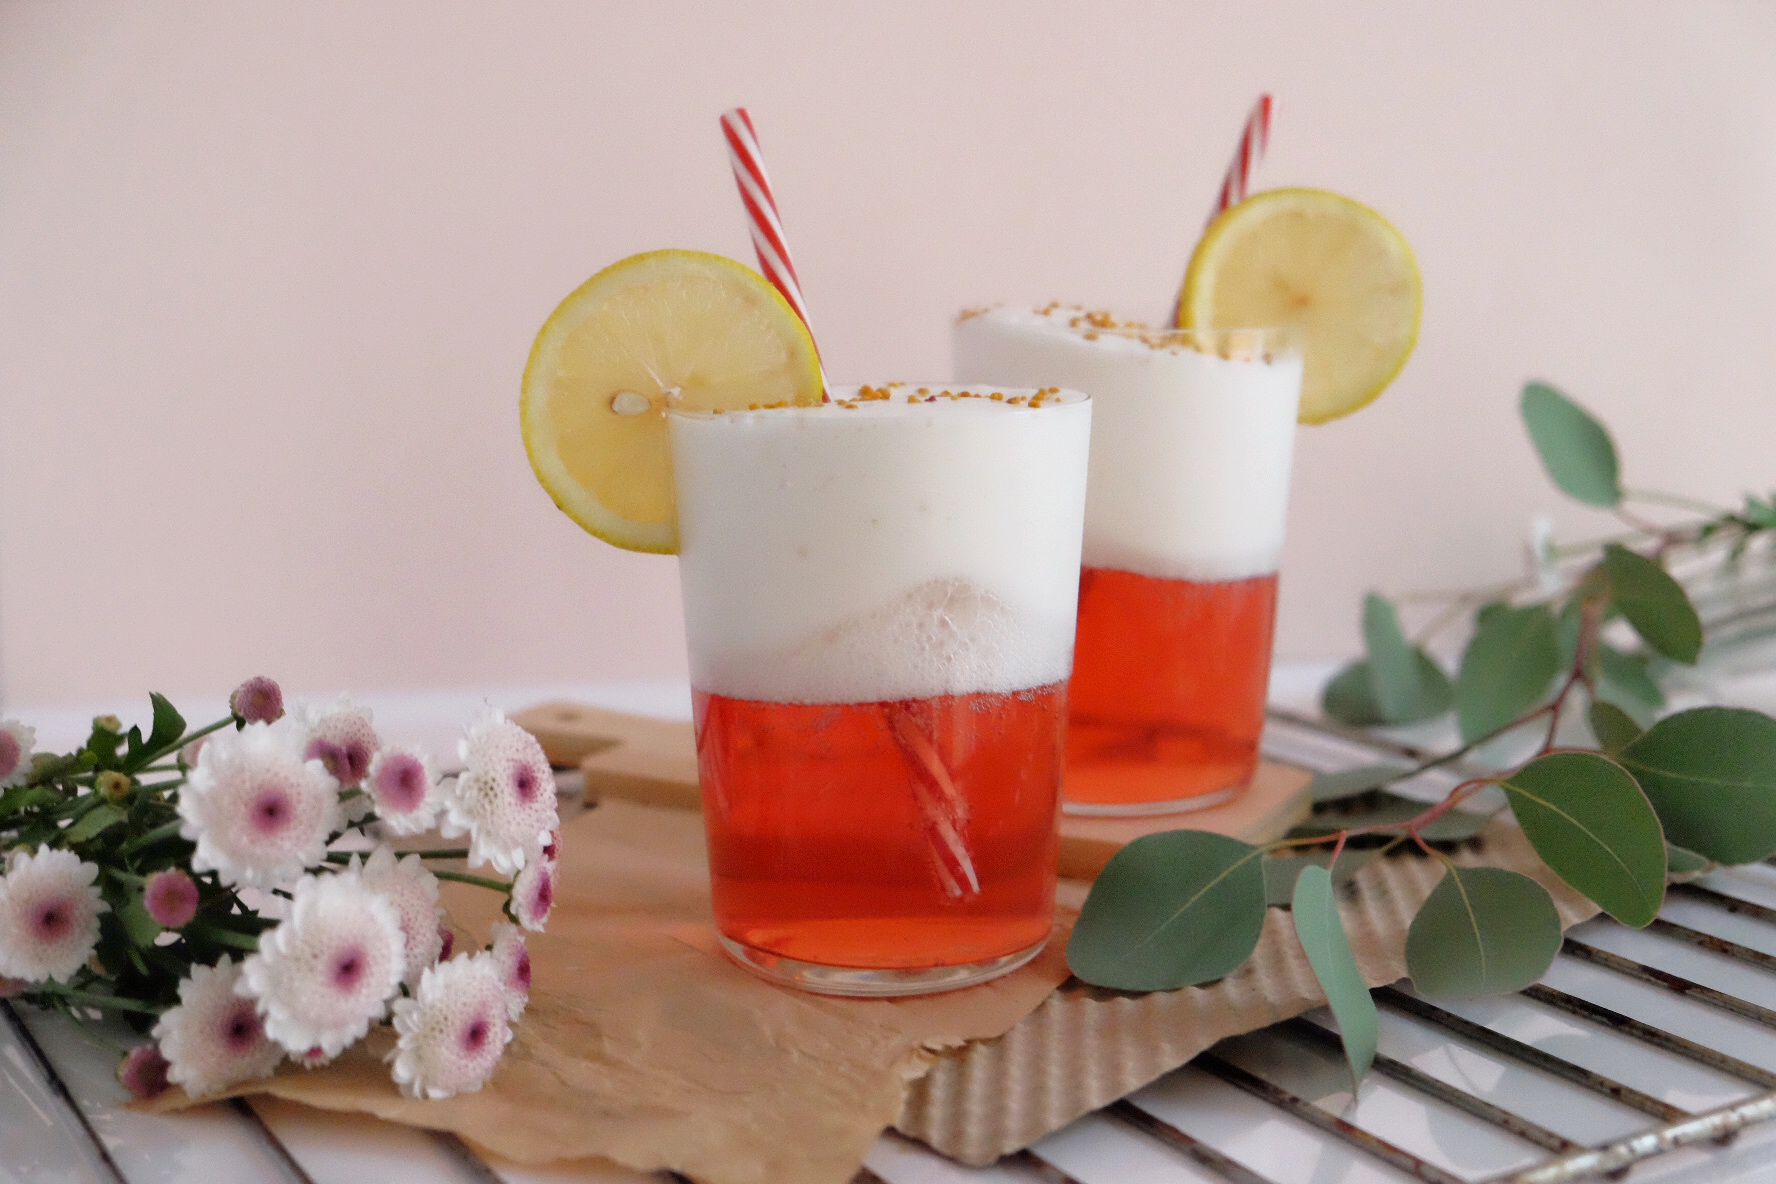 Sweet and delicious almond cocktail